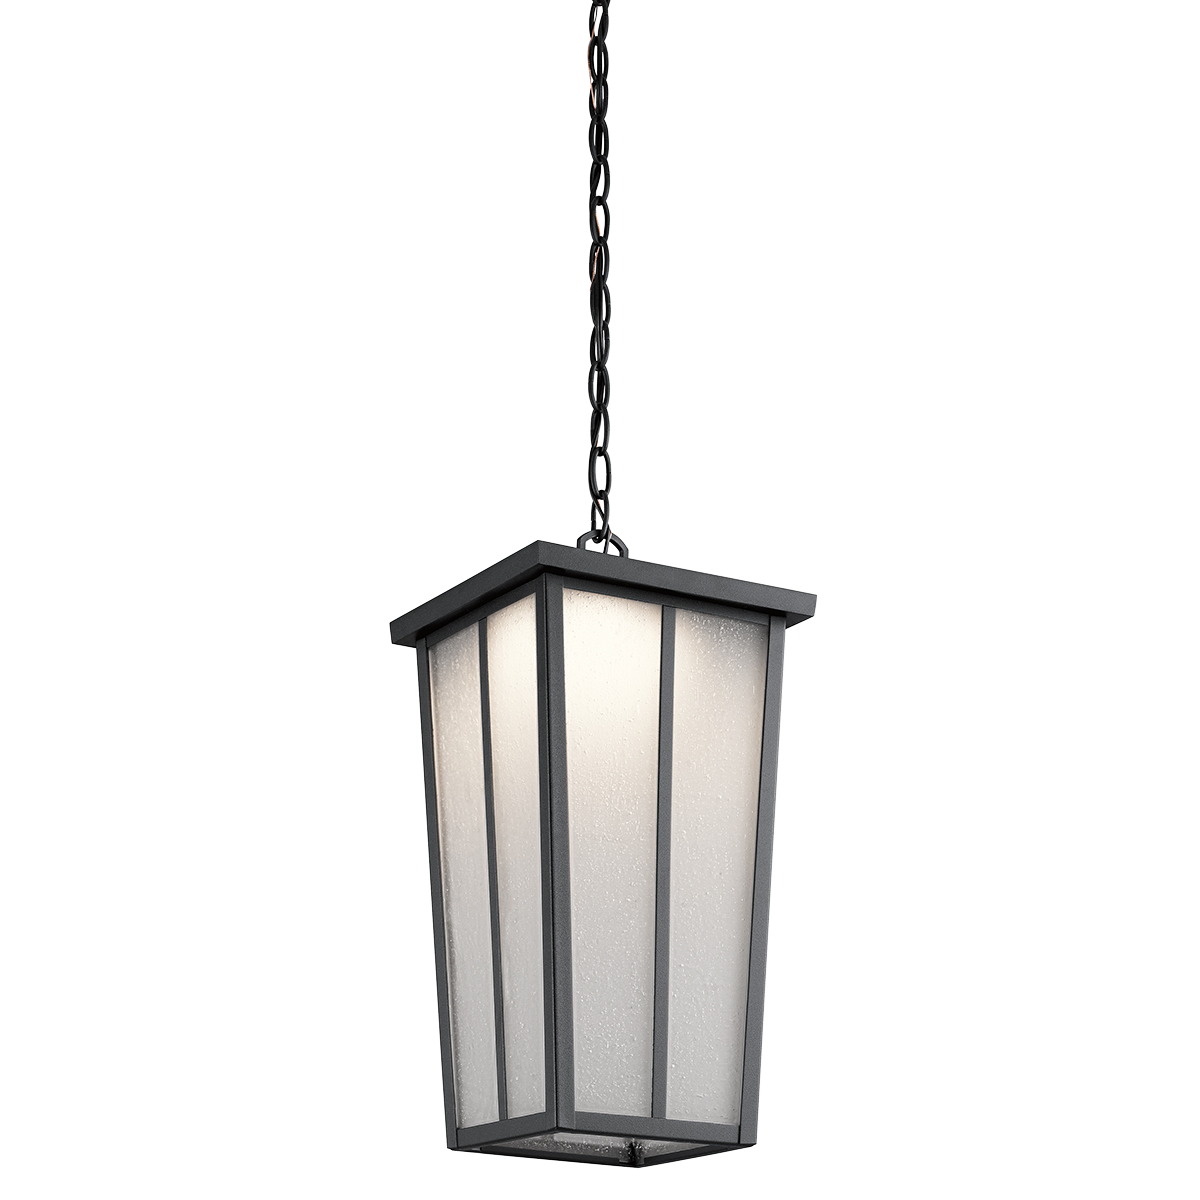 Amber Valley Collection; Amber Valley LED Outdoor Pendant in BKT